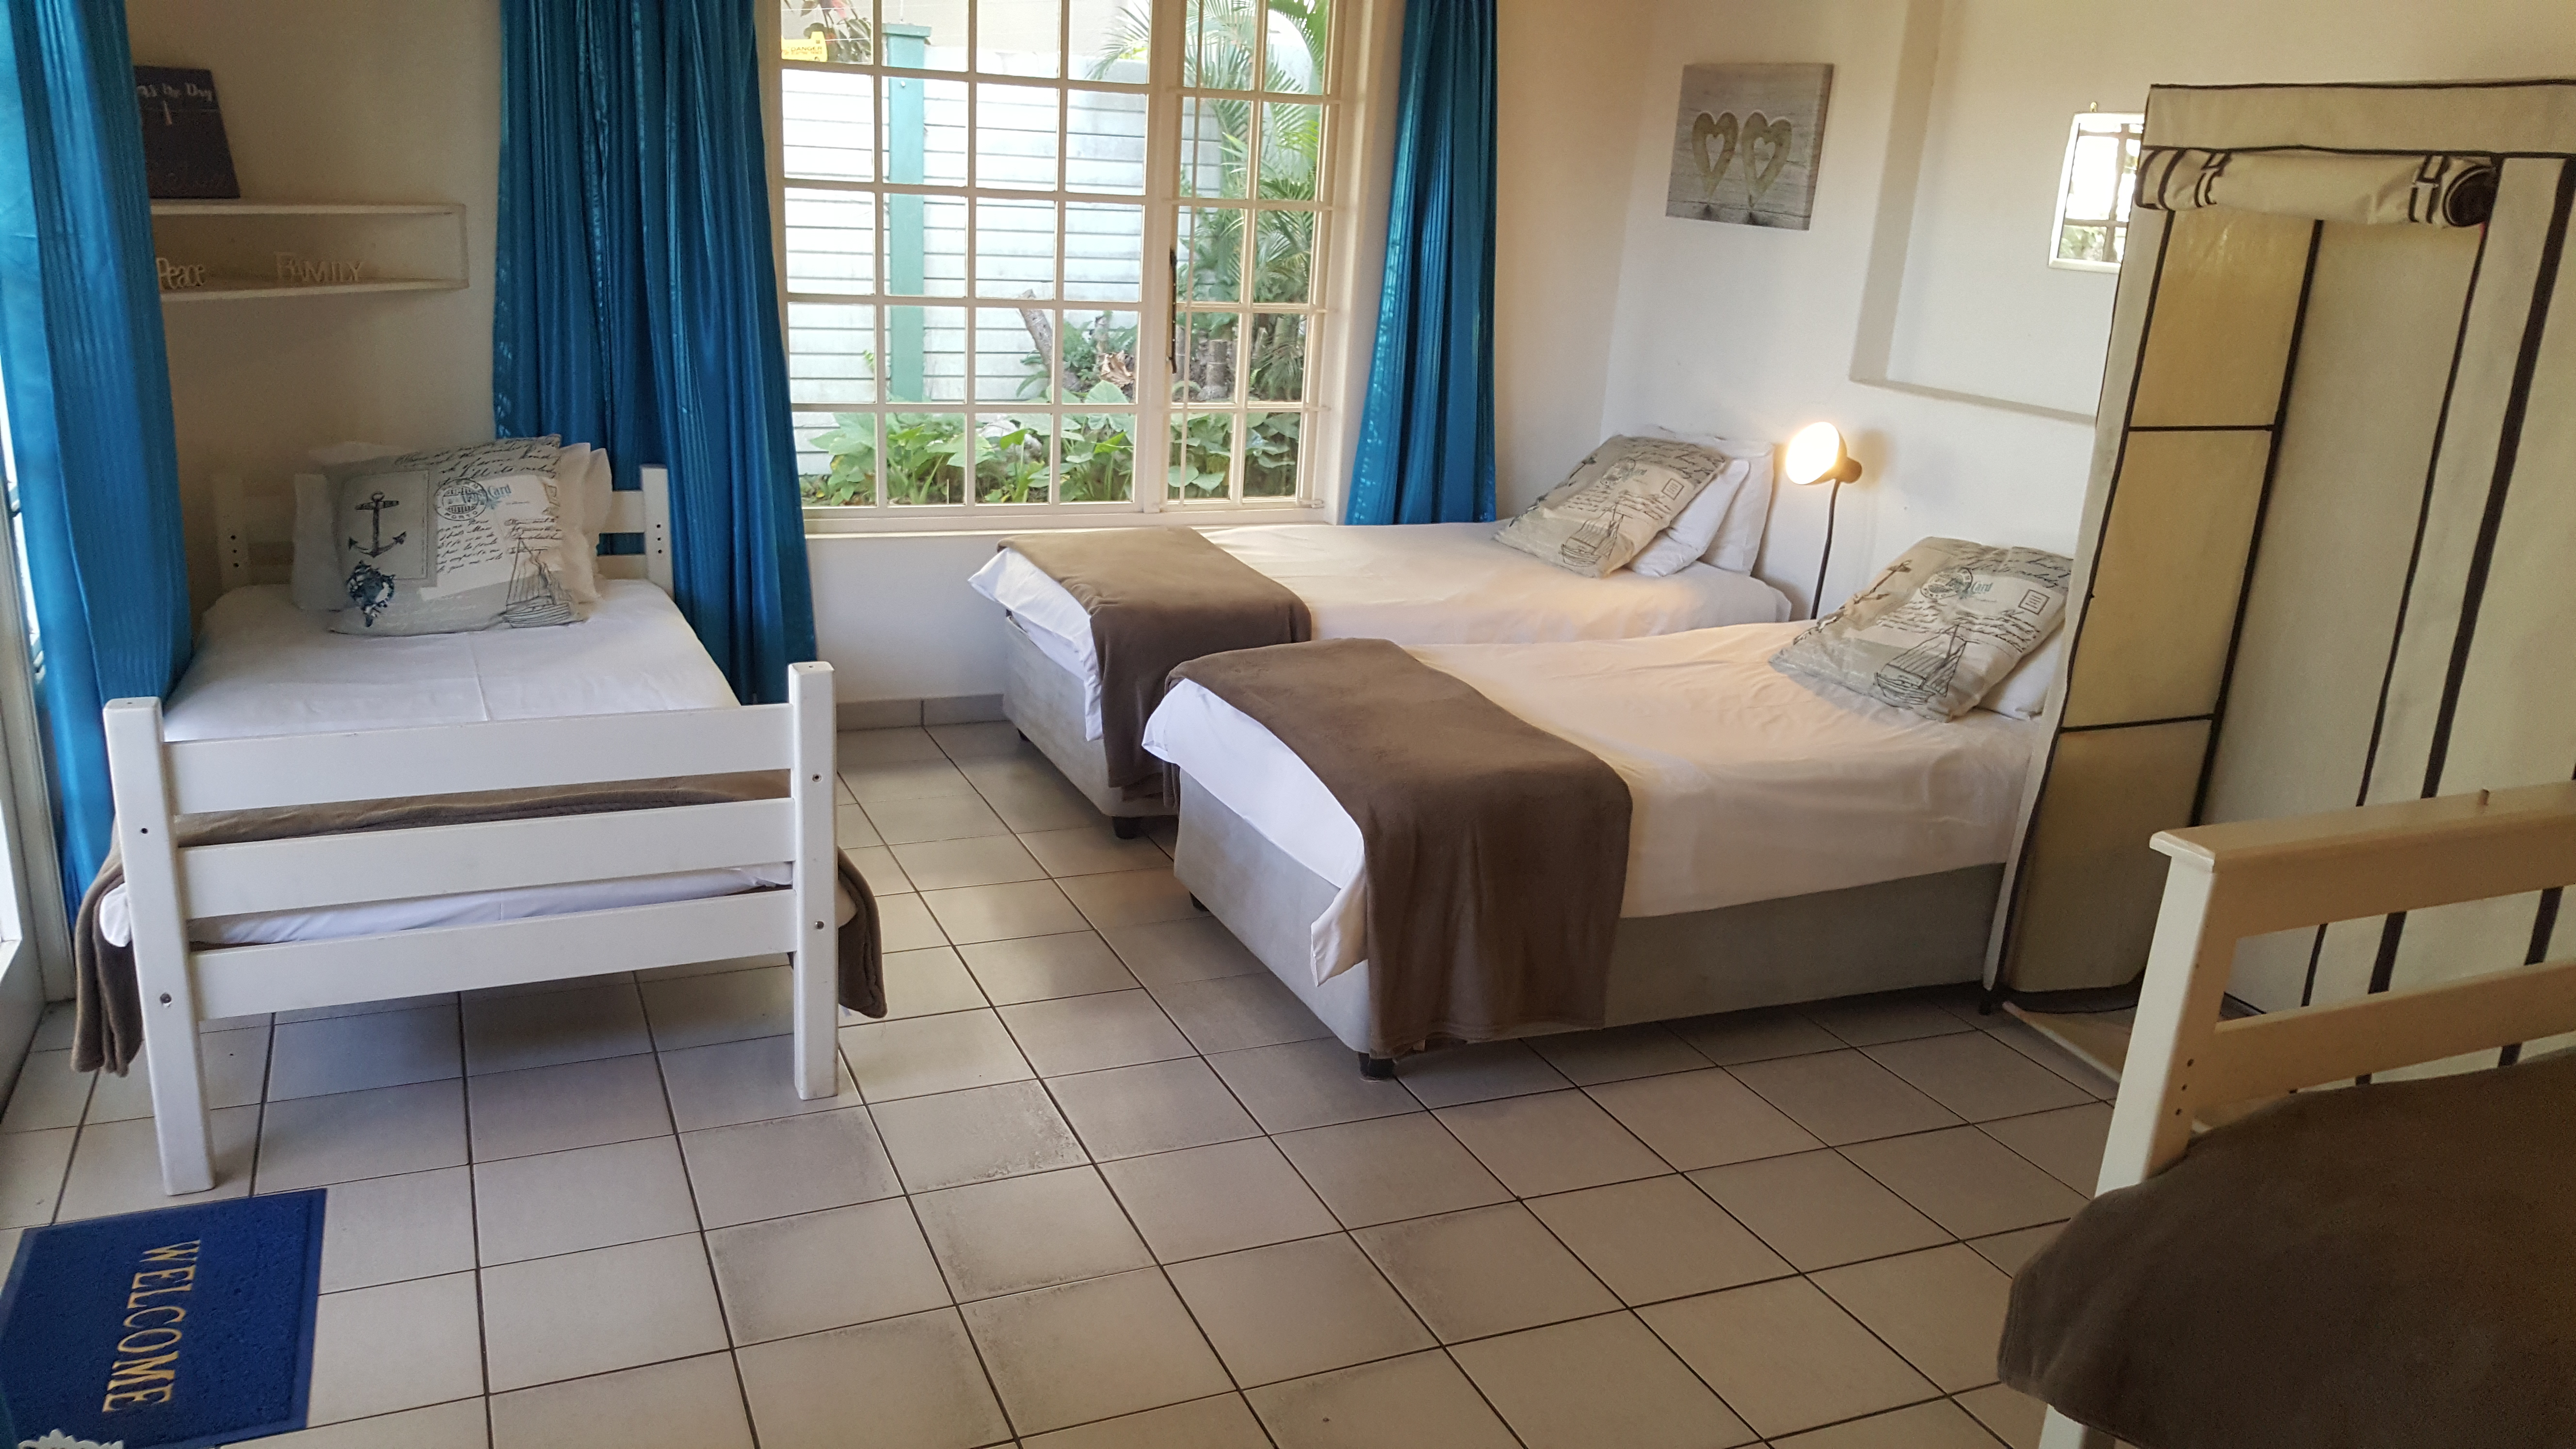 Second bedroom with 3 single beds